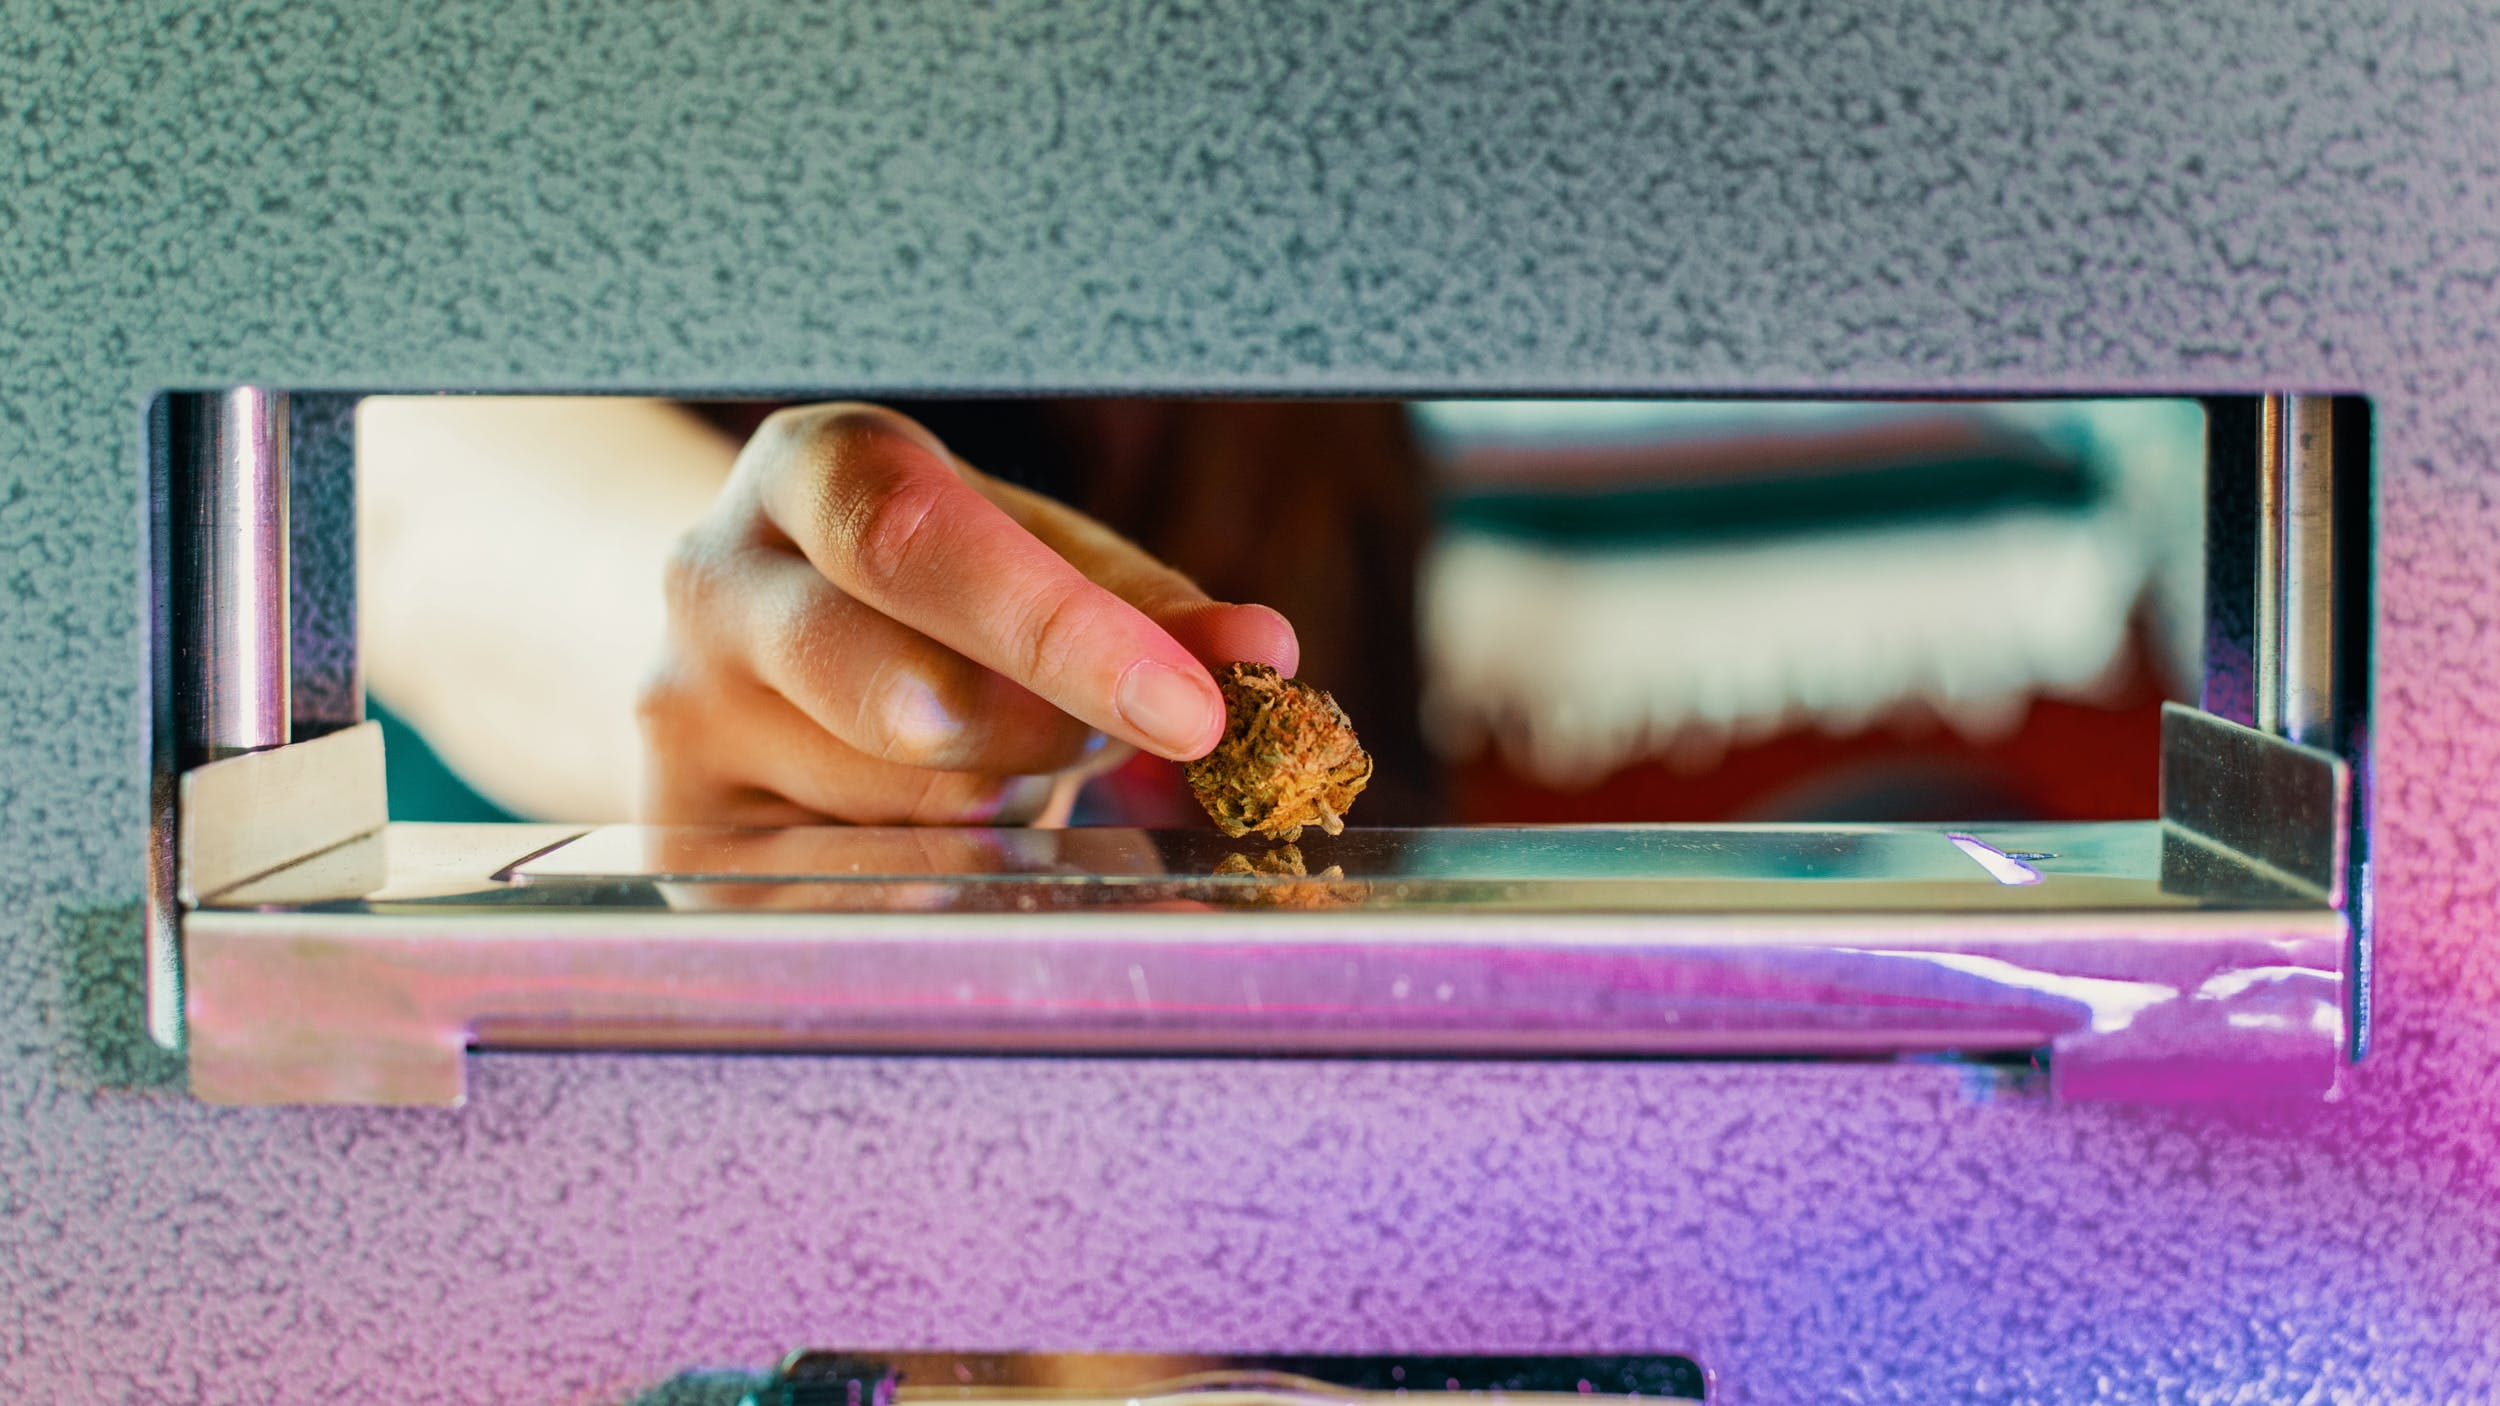 A hand places a nug in the best rosin press